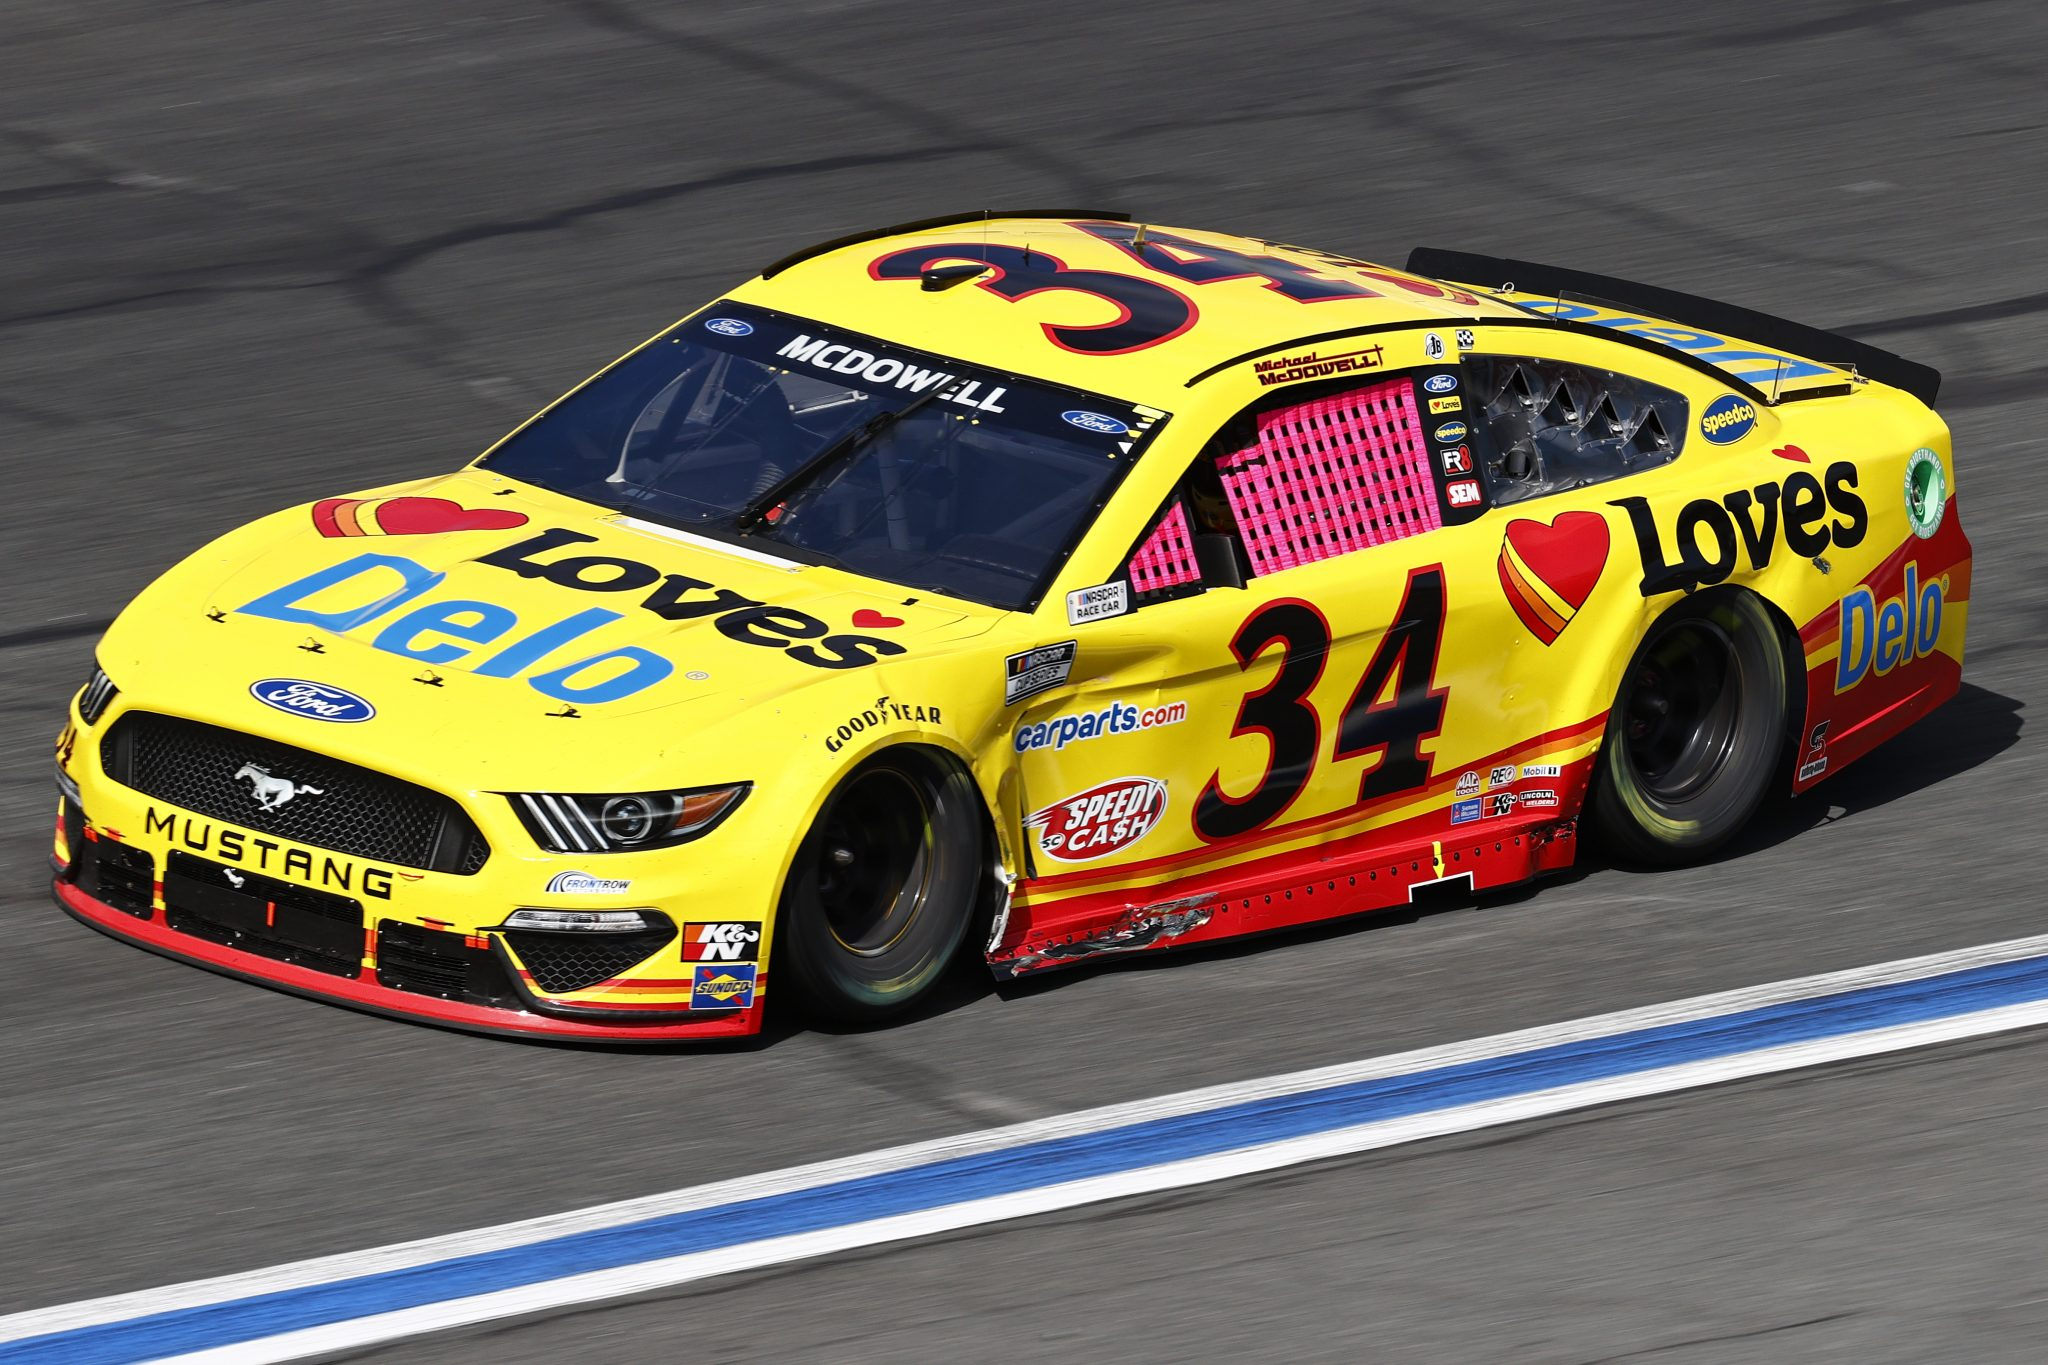 CONCORD, NORTH CAROLINA - OCTOBER 10: Michael McDowell, driver of the #34 Love's Travel Stops Ford, drives during the NASCAR Cup Series Bank of America ROVAL 400 at Charlotte Motor Speedway on October 10, 2021 in Concord, North Carolina. (Photo by Jared C. Tilton/Getty Images) | Getty Images